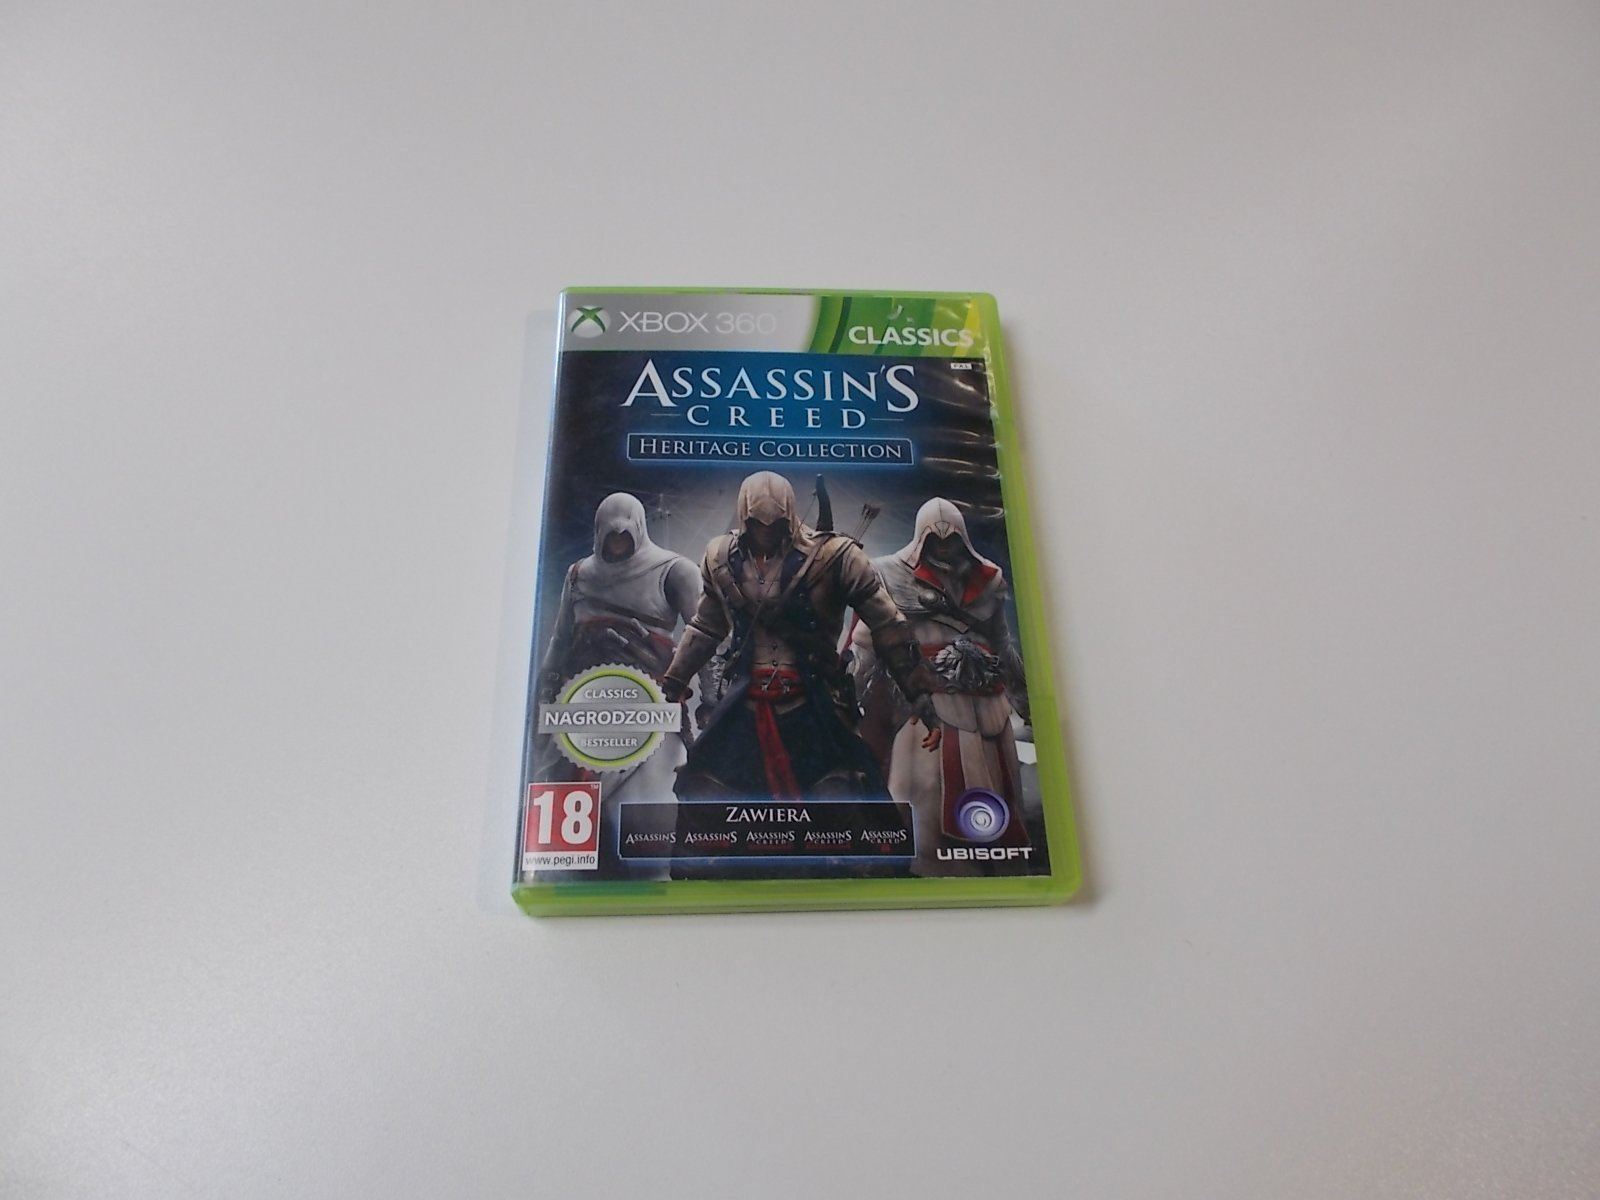 Assassin's Creed Heritage Collection - GRA Xbox 360 - Opole 0437